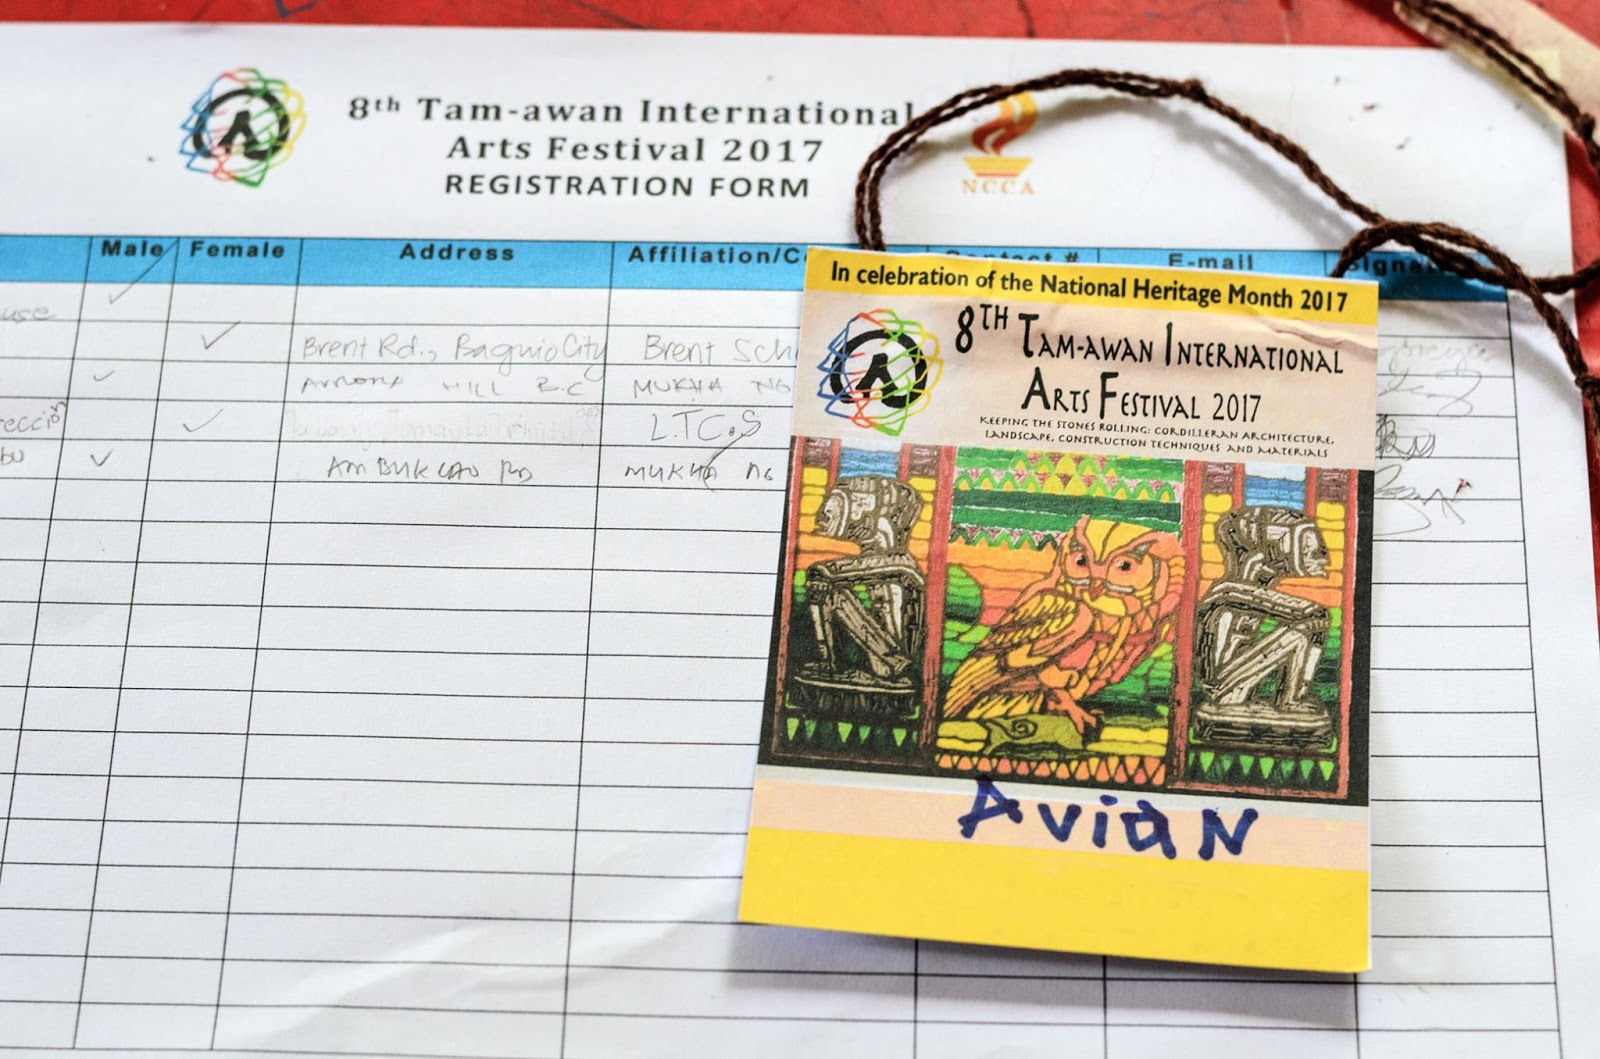 International Arts Festival 8th Tam-awan Baguio City Philippines Registration